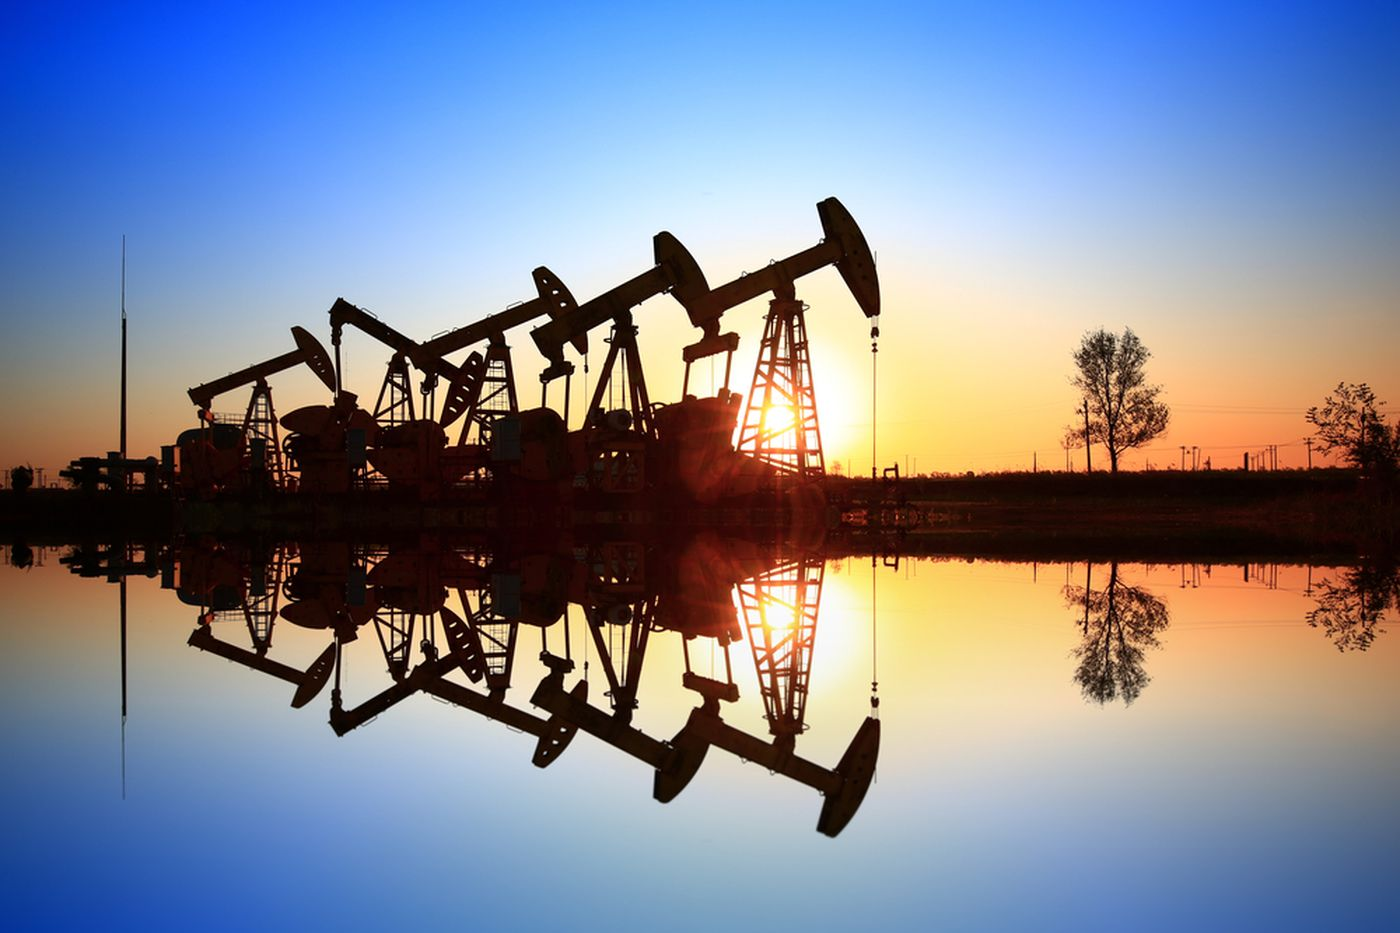 https://tickertapecdn.tdameritrade.com/assets/images/pages/md/Oil wells operating in front of sunset